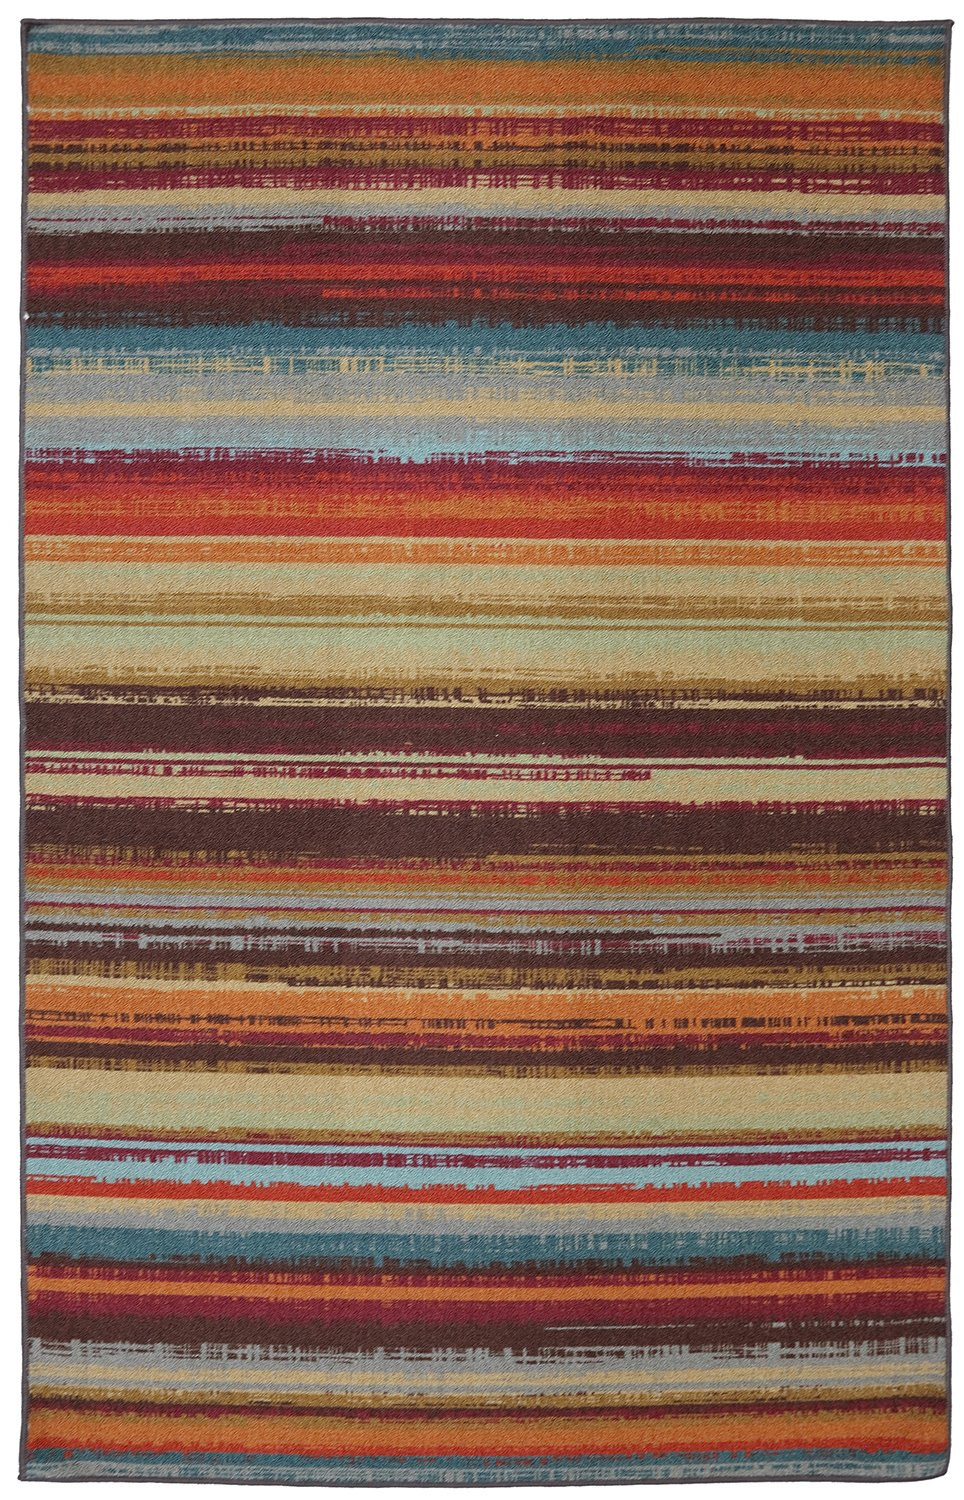 Mohawk Home Avenue Stripes Indoor/ Outdoor Printed Area Rug, 7'6x10', Multicolor by Mohawk Home (Image #1)